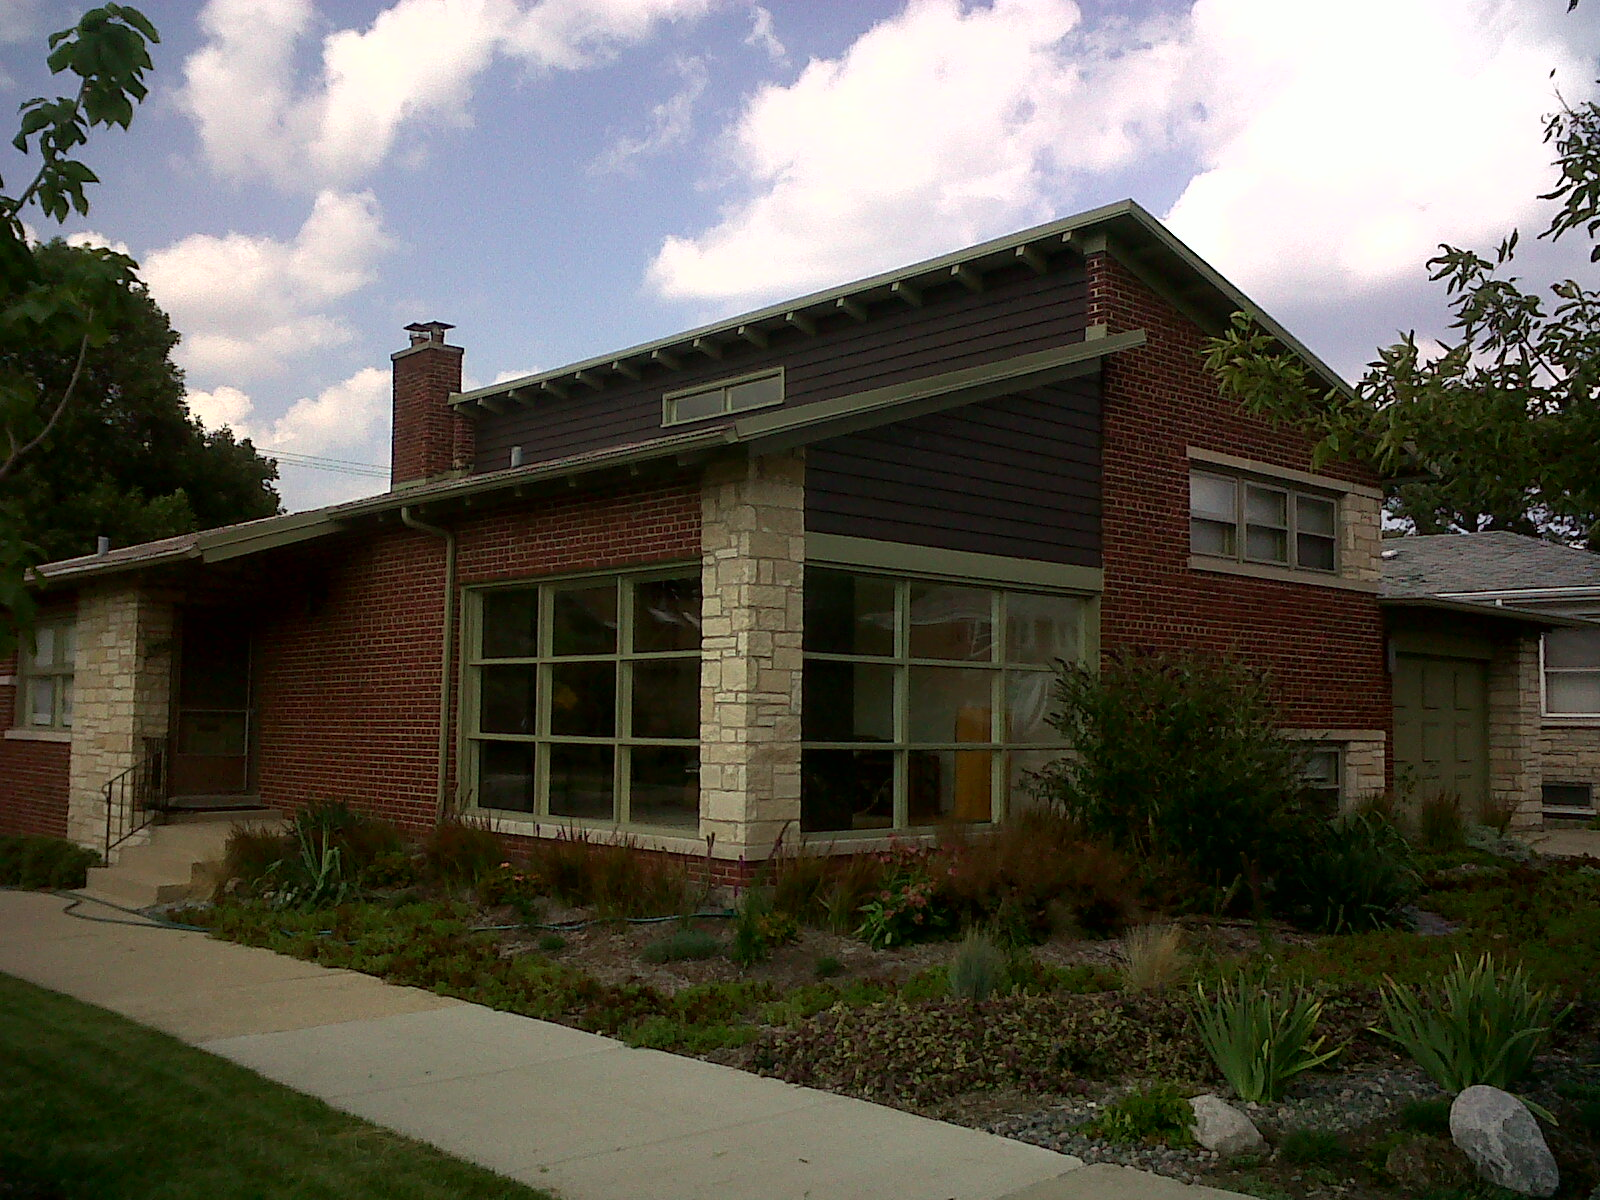 The chicago real estate local three mid century modern for Mid century modern home builders